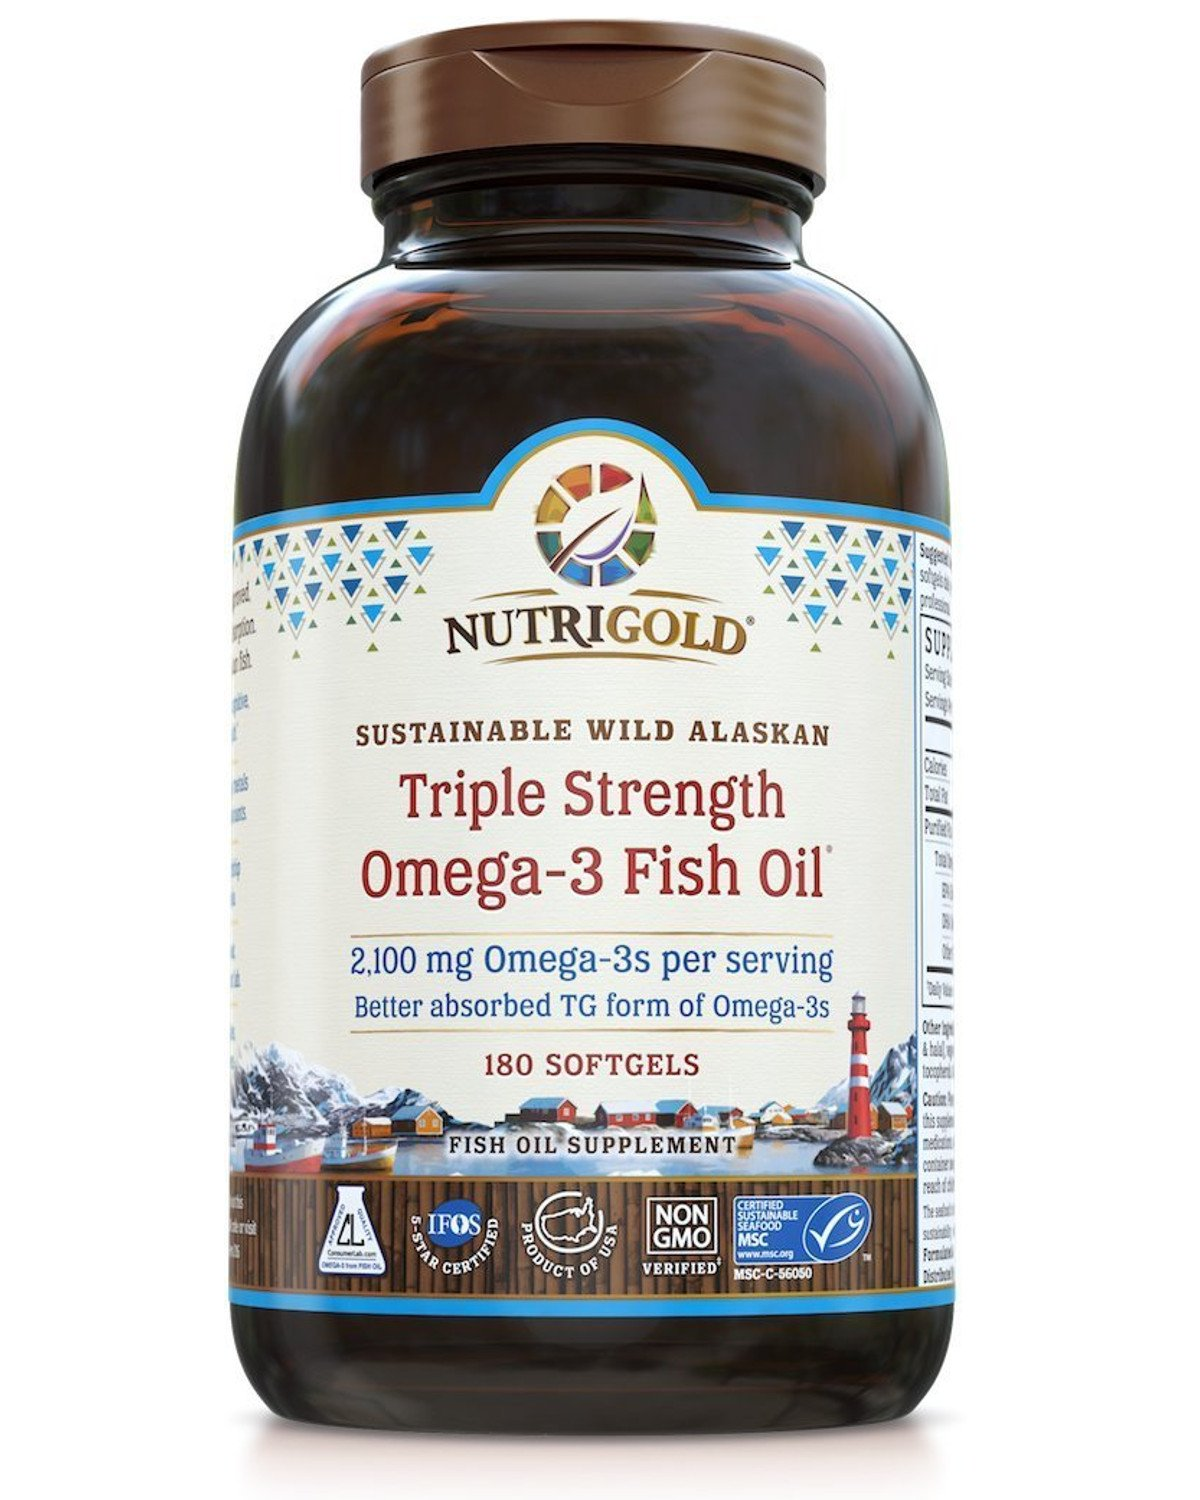 Nutrigold Triple Strength Omega-3 Gold Fish Oil Supplement, 1250 mg, 180 Softgels by Nutrigold